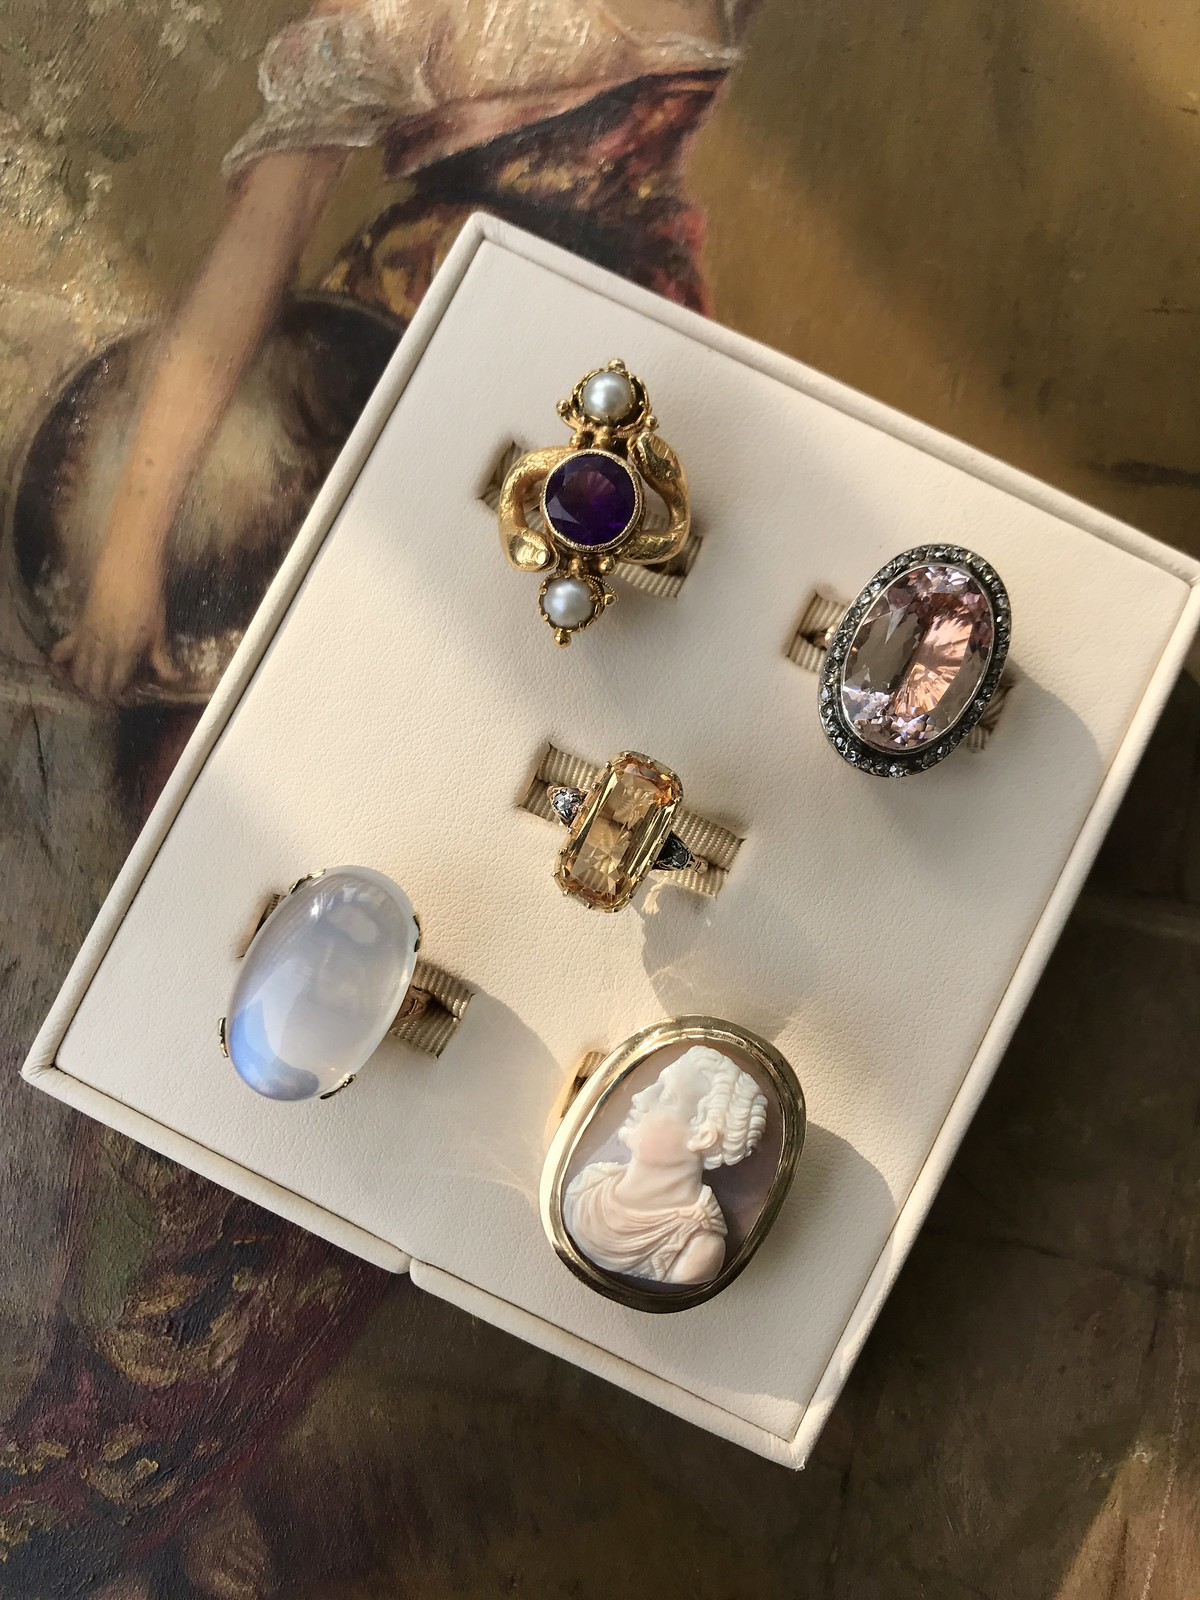 Jewelry Collection Stories Lindsey Of Parkavenueantiques